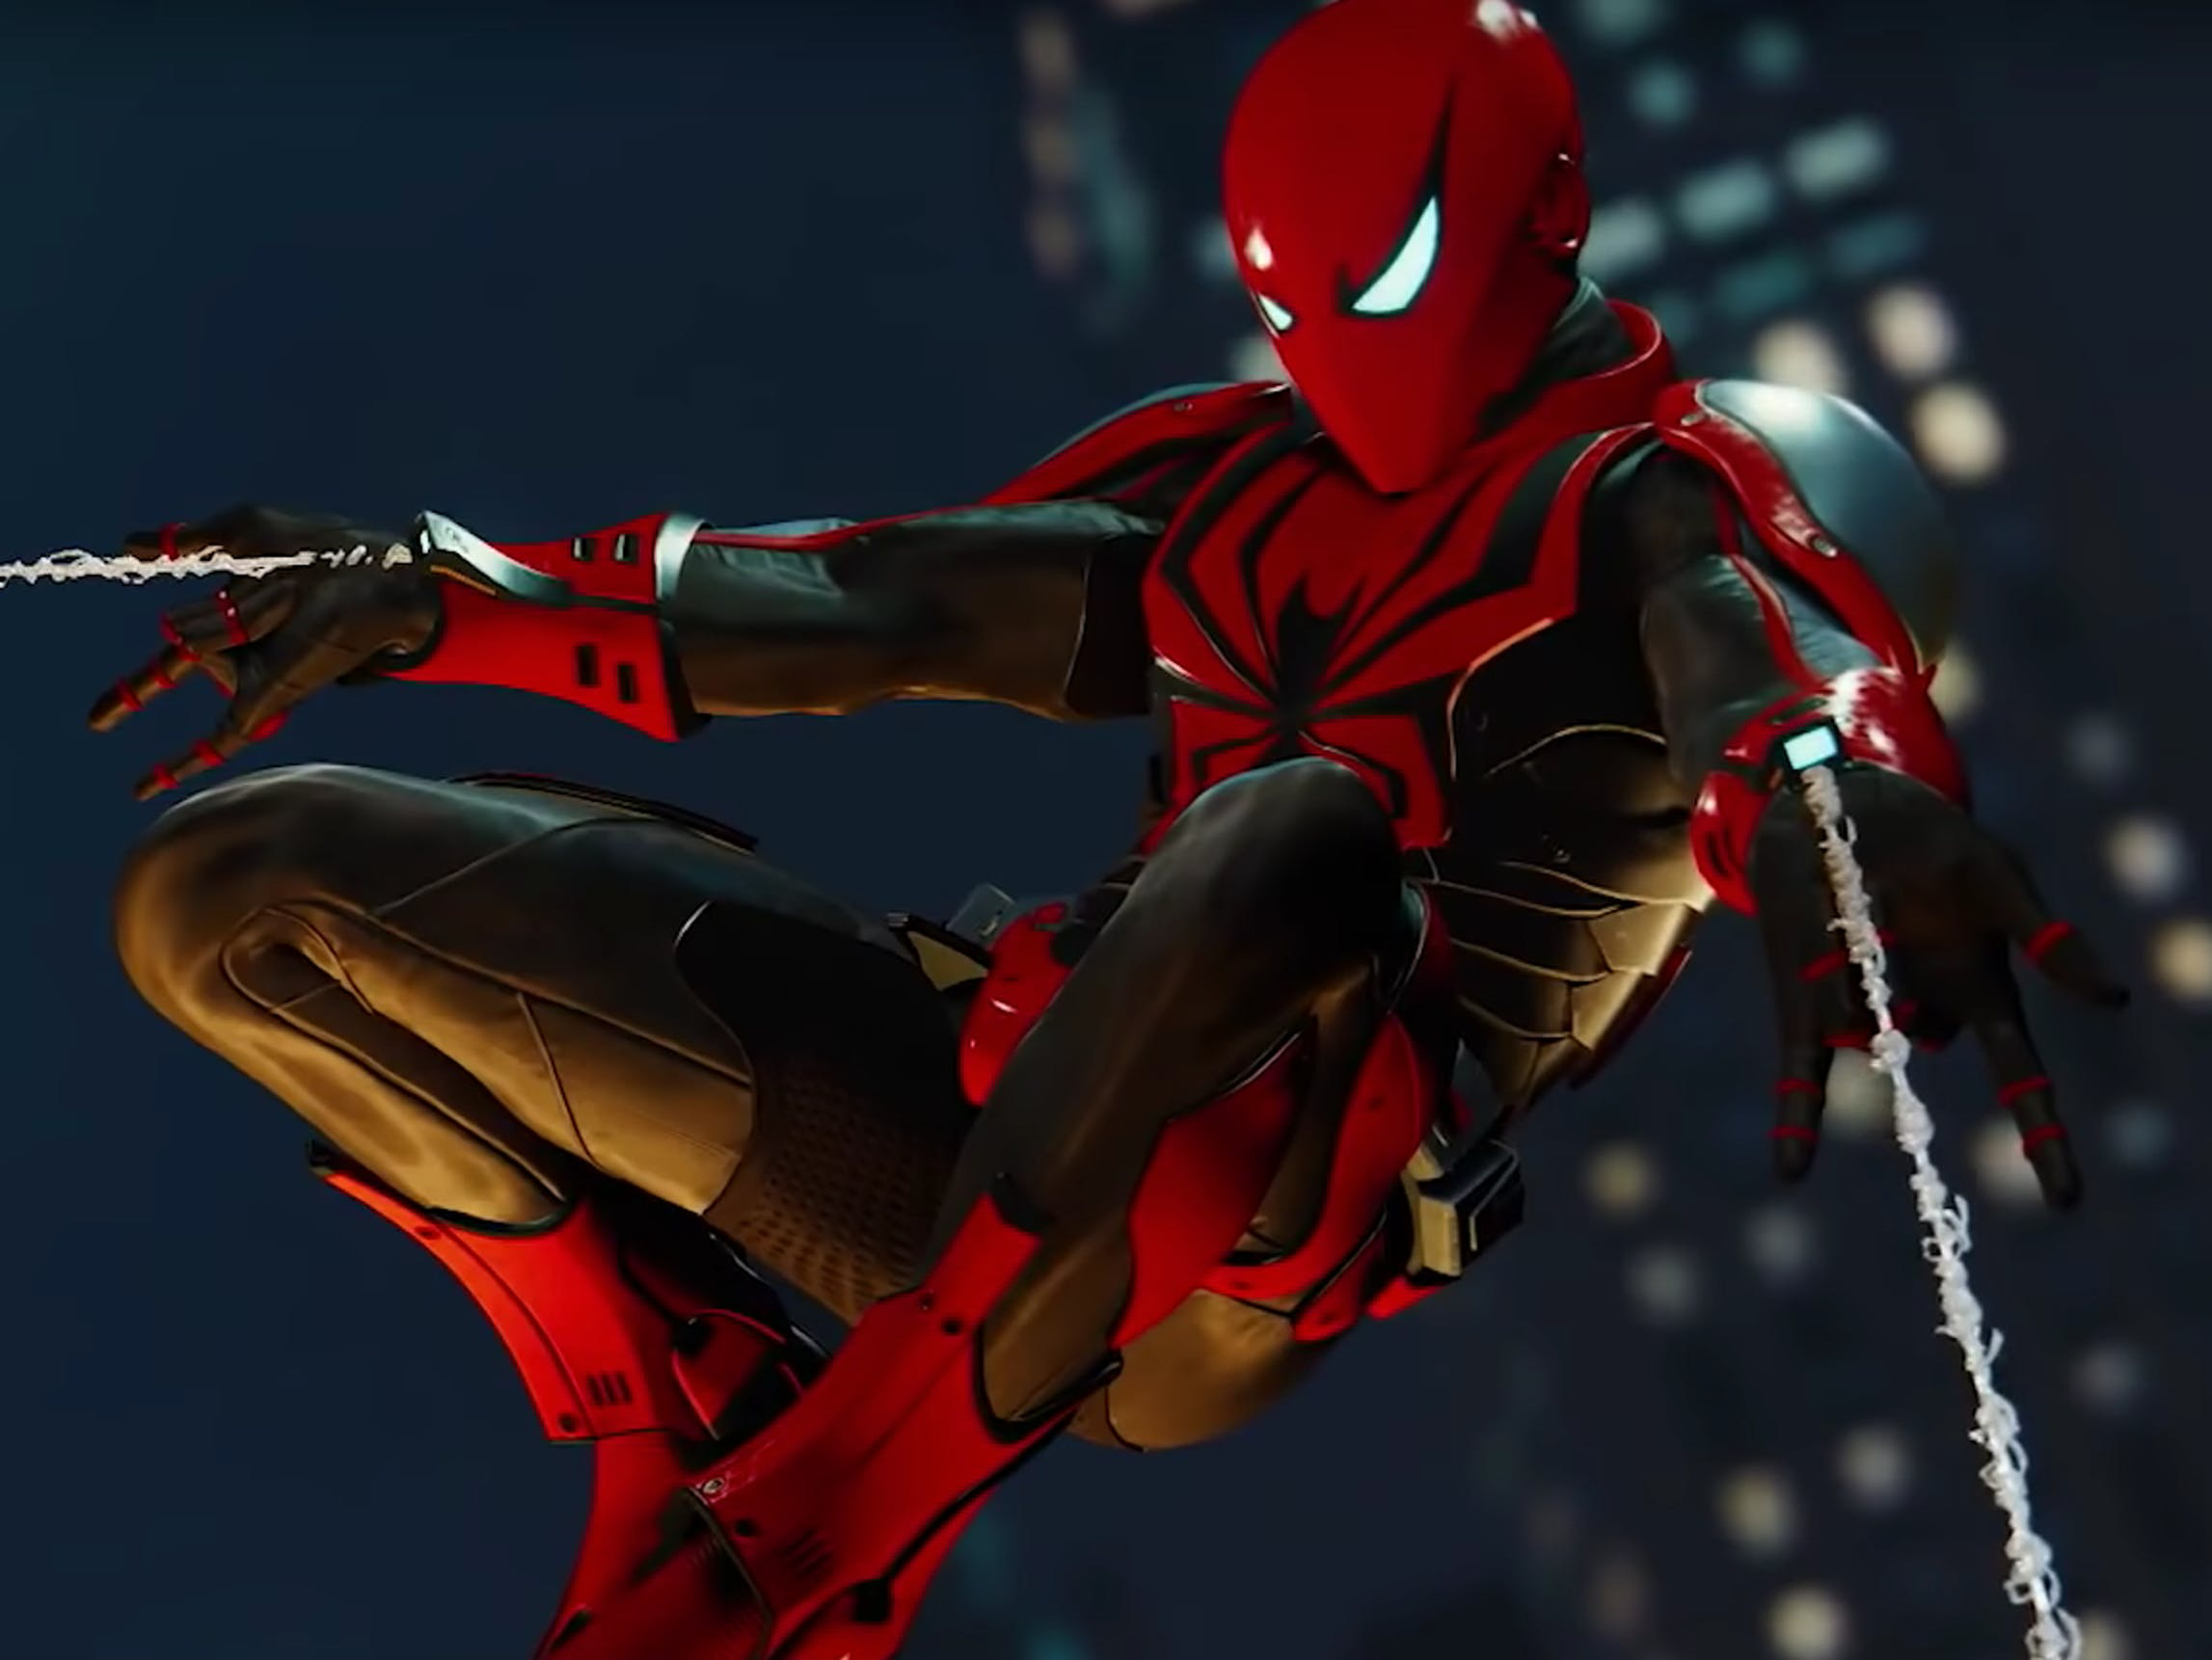 Spider-Man MK III Armor PS4